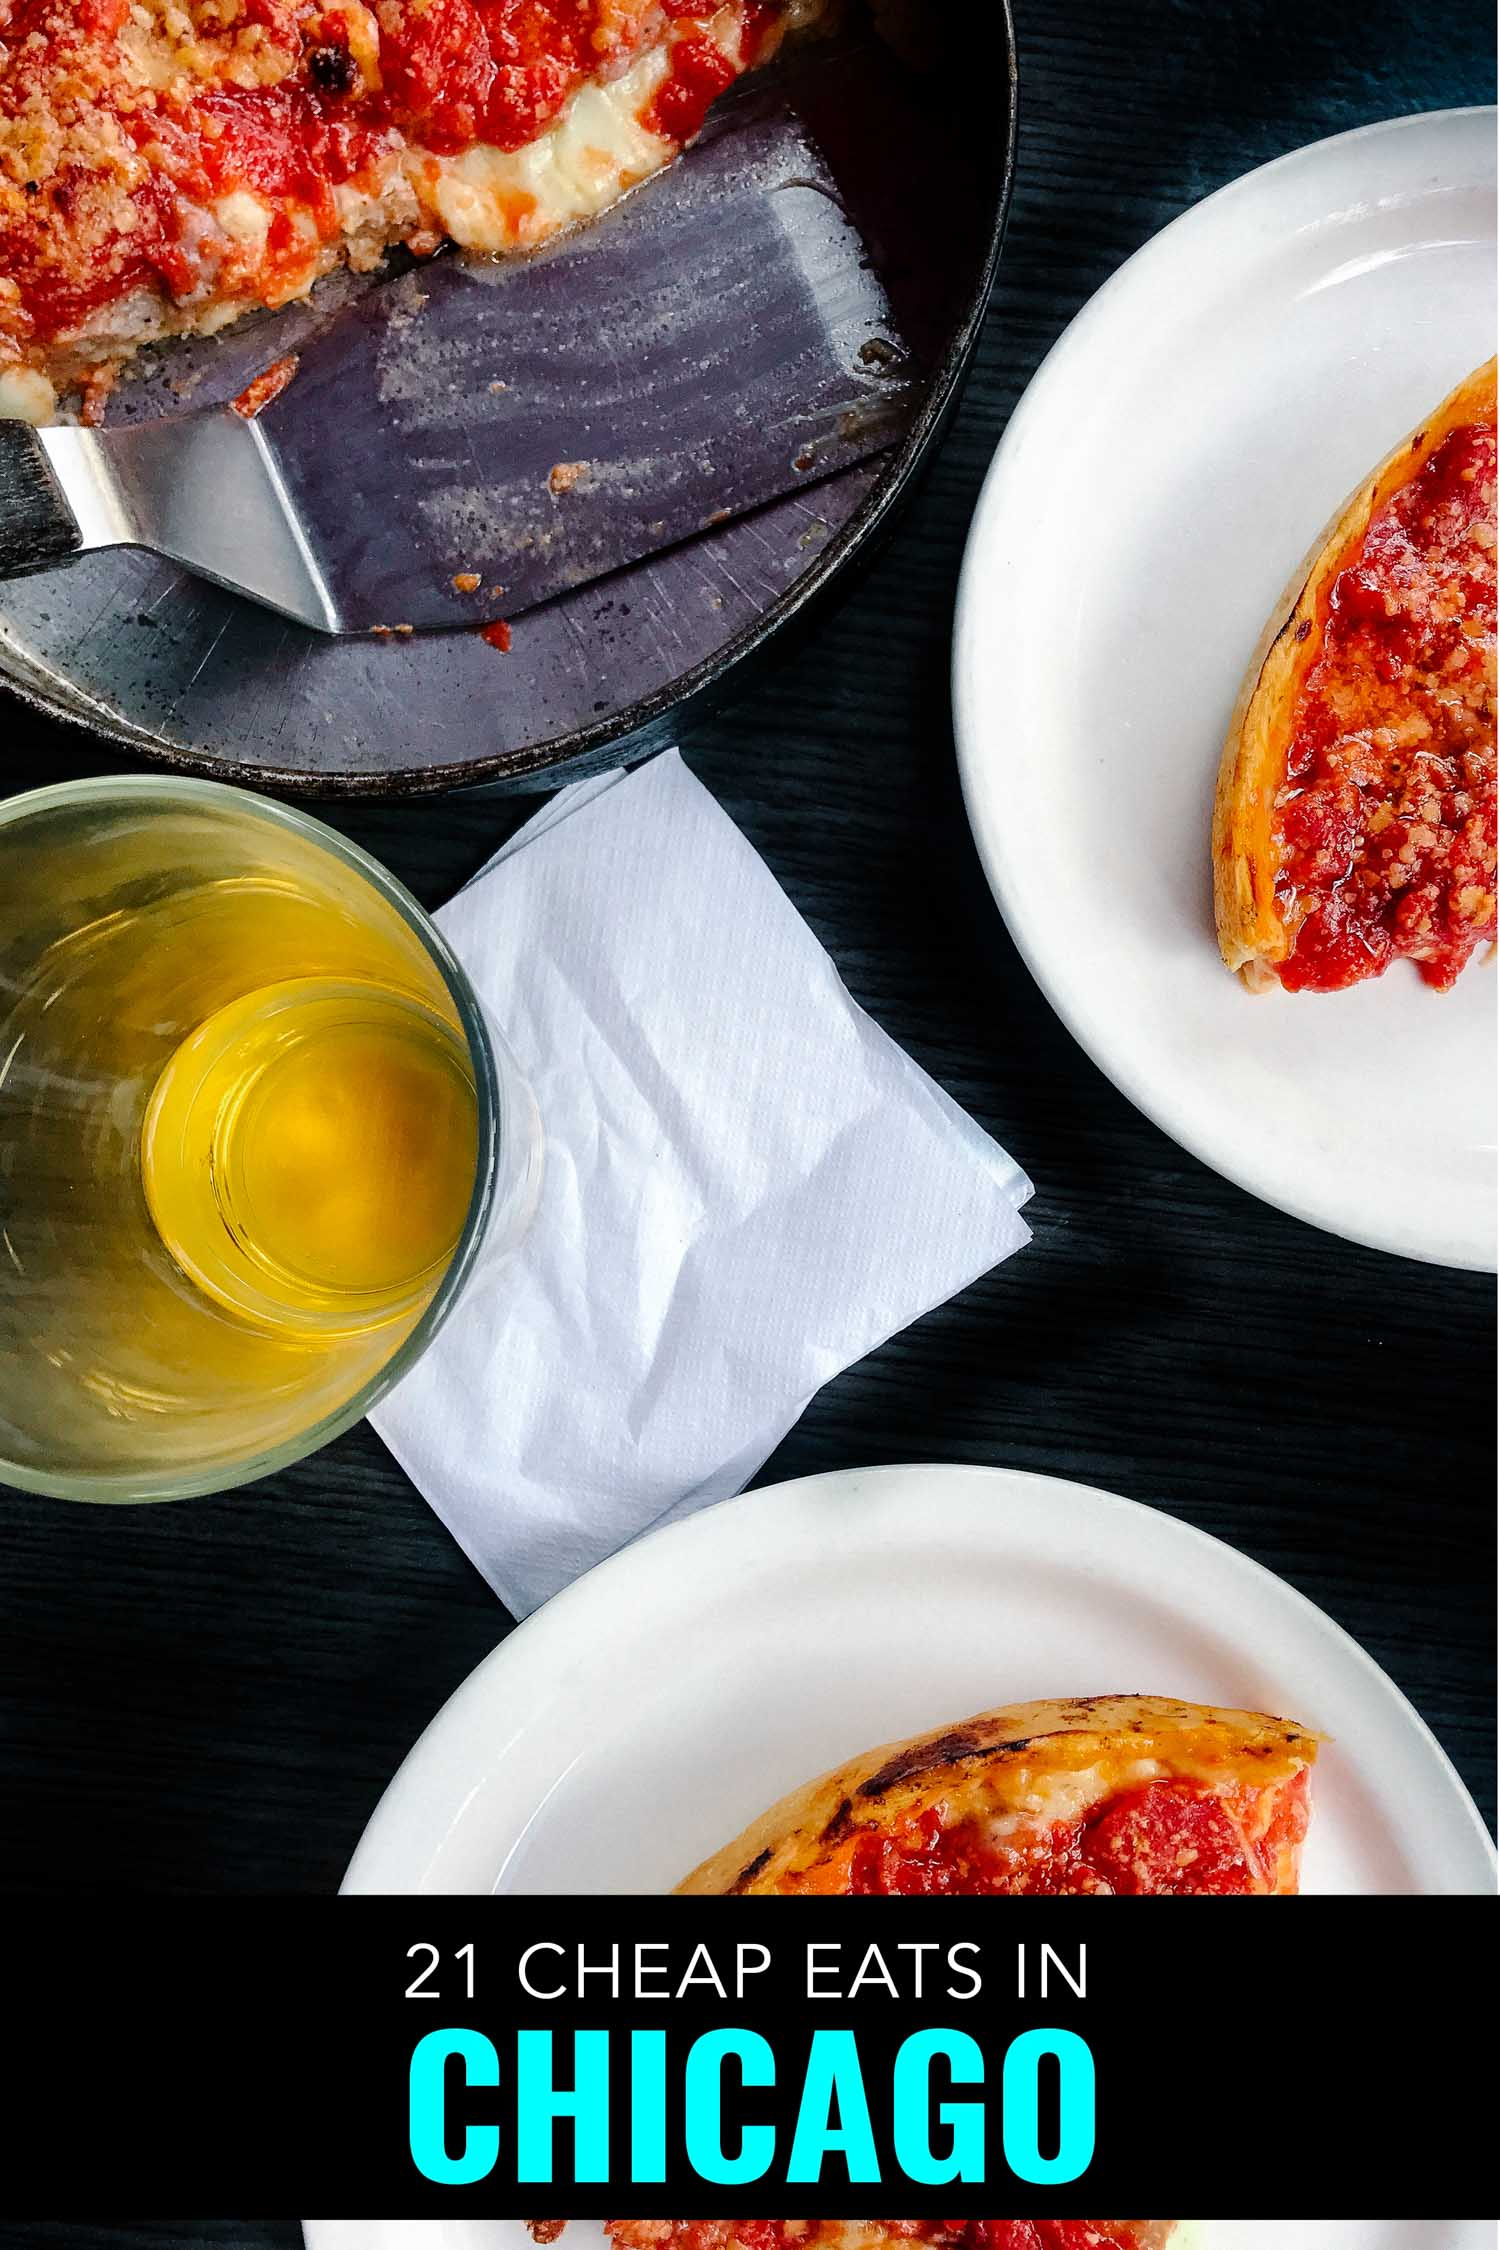 Famous deep dish Chicago pizza is one of the best cheap eats in Chicago.